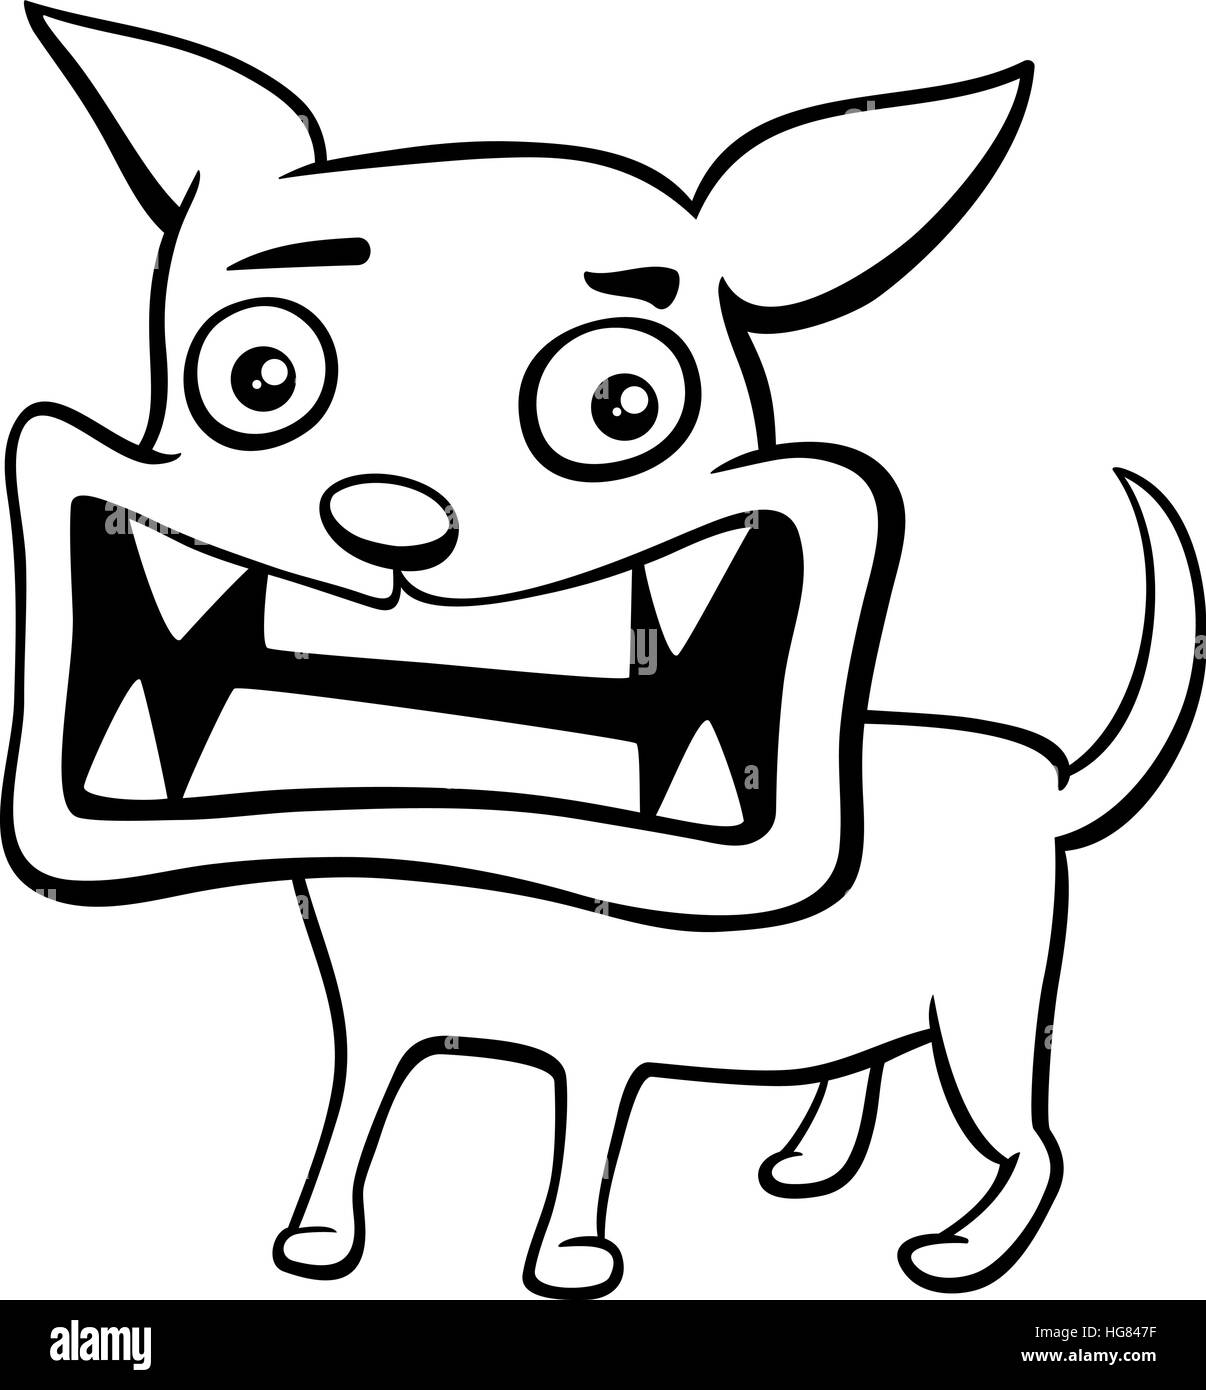 Black And White Cartoon Illustration Of Angry Dog Or Puppy Animal Character Coloring Page